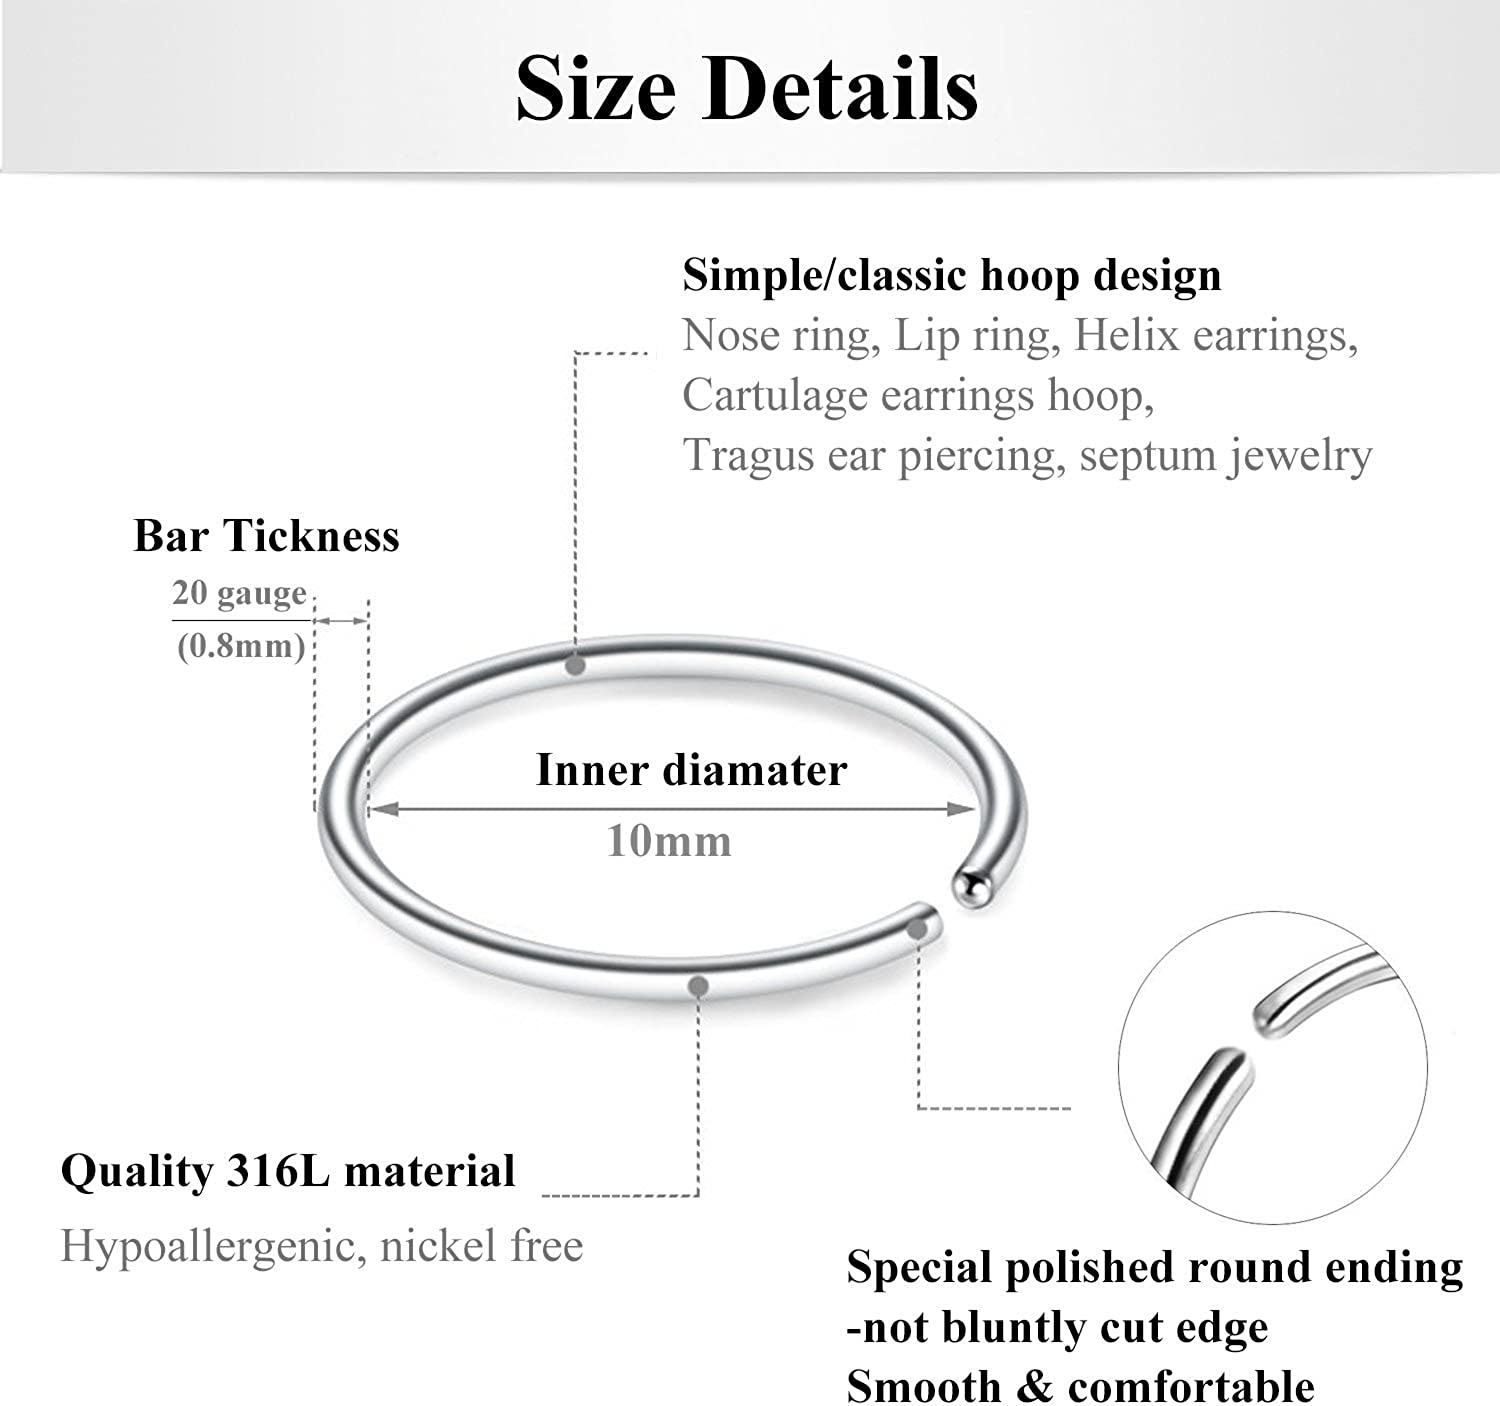 Briana Williams Fake Nose Rings Hoop 20g Surgical Steel Septum Lip Helix Cartilage Tragus Earring Hoop Nose Ring 6mm 8mm 10mm 12mm Faux Body Piercing Jewelry